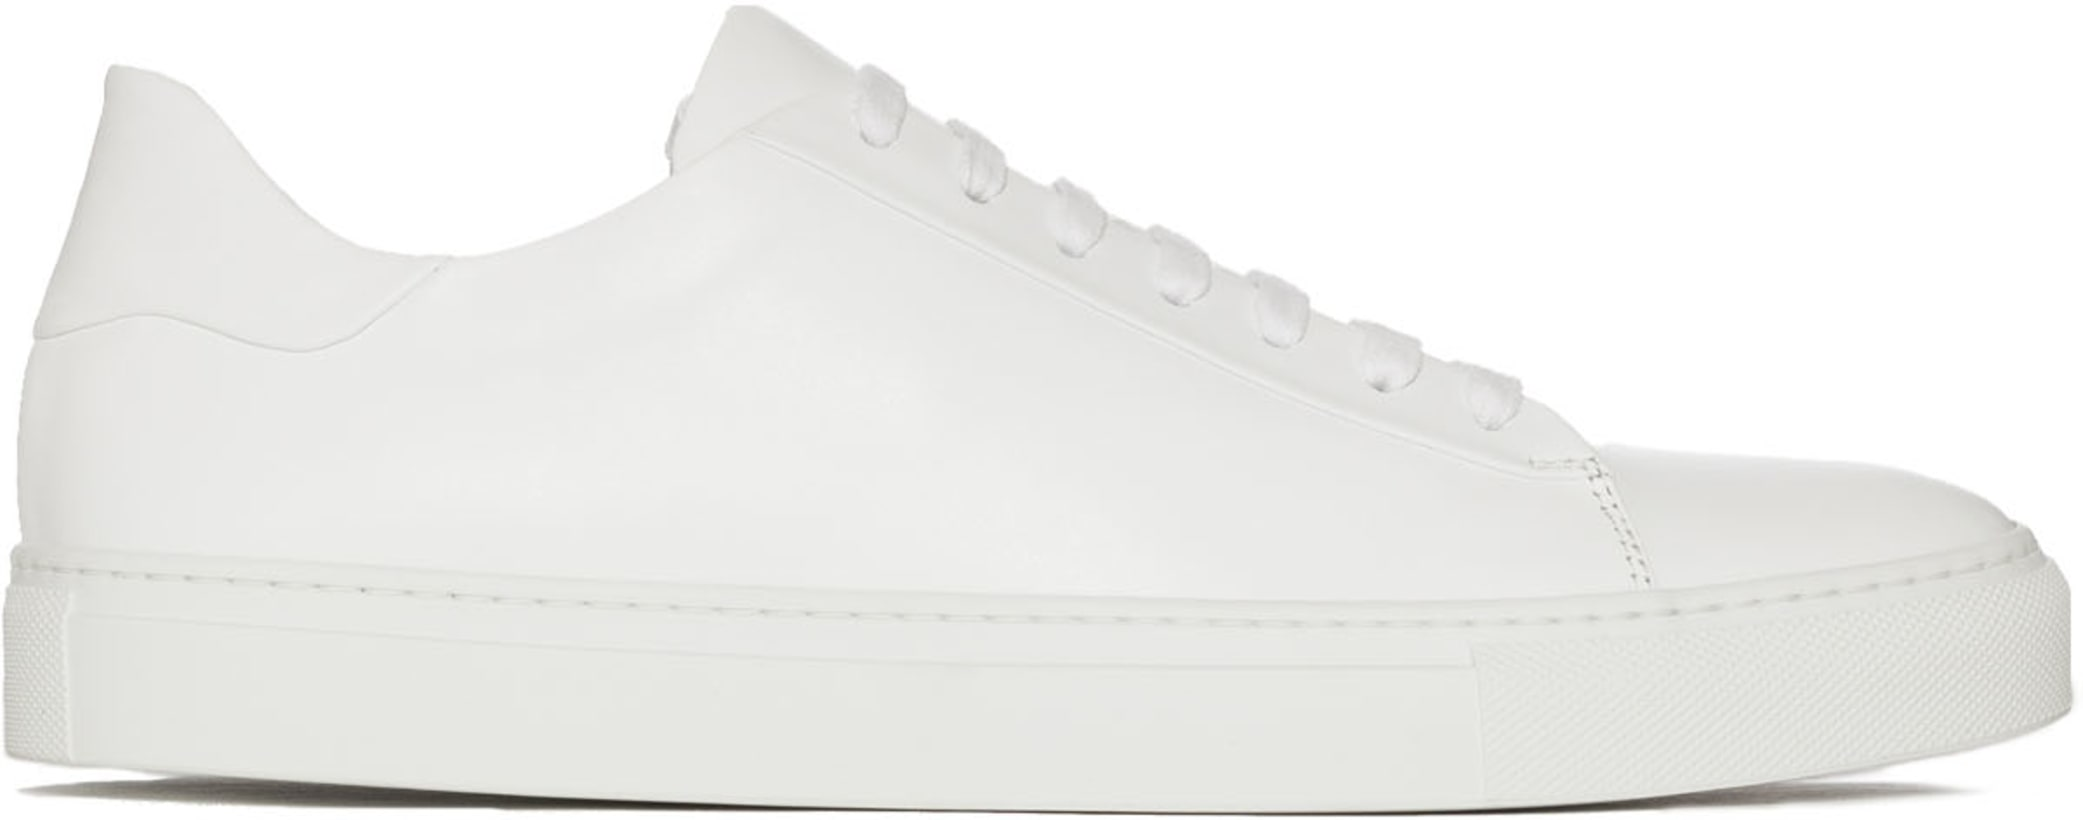 53f6052234 Wings & Horns - Court Low - White/White